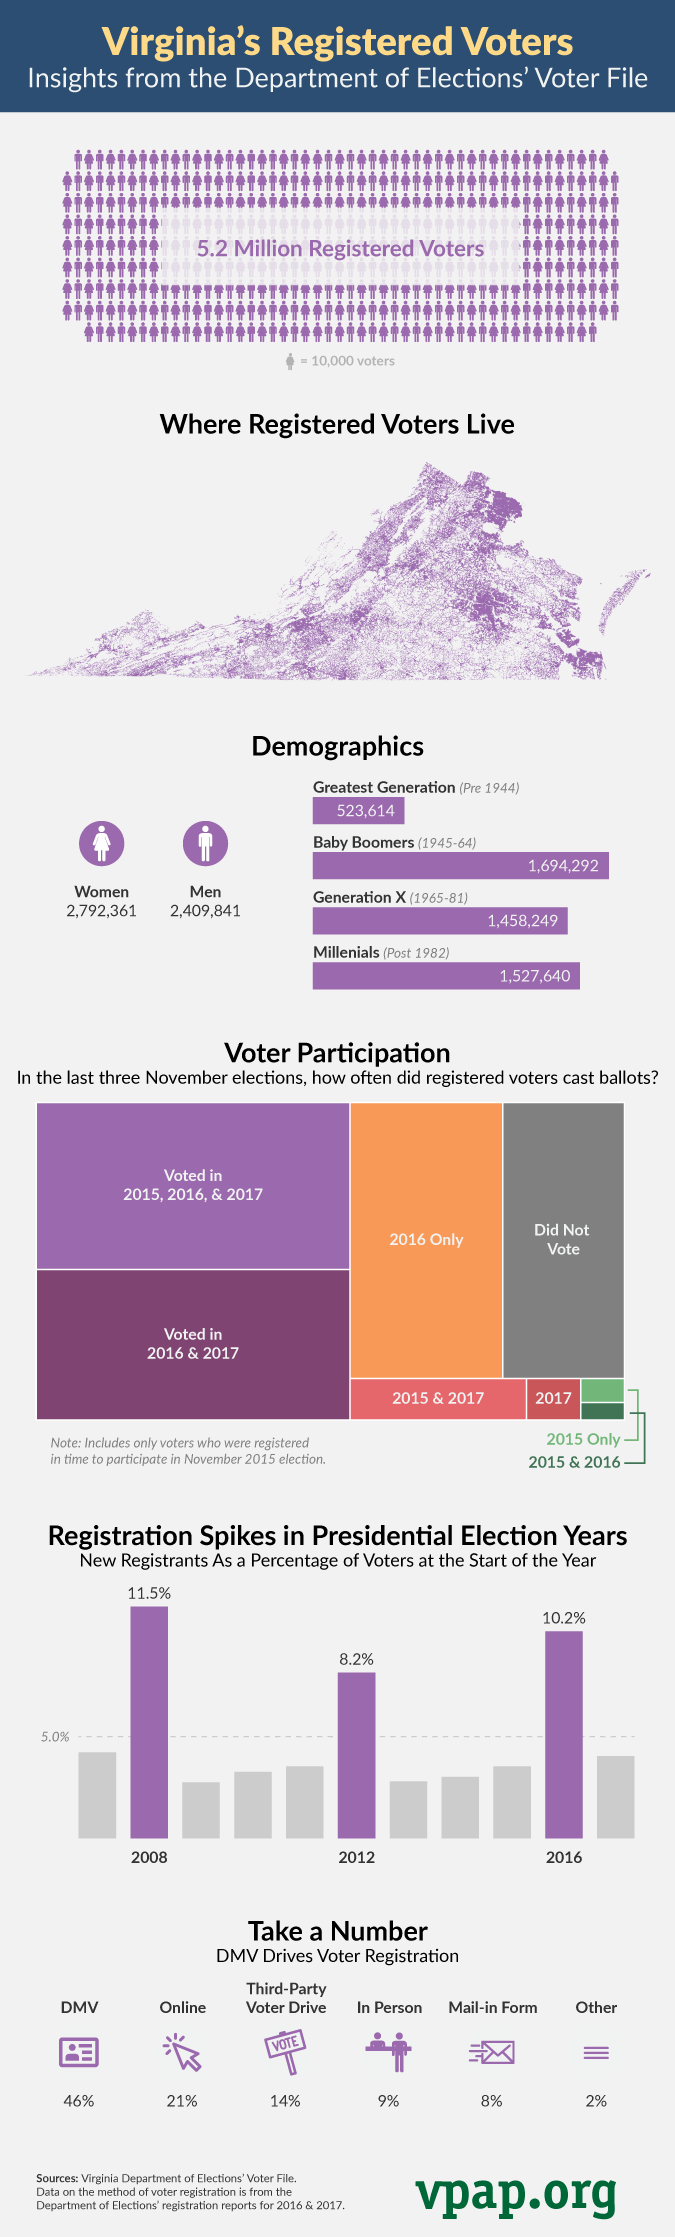 Virginia's Registered Voters